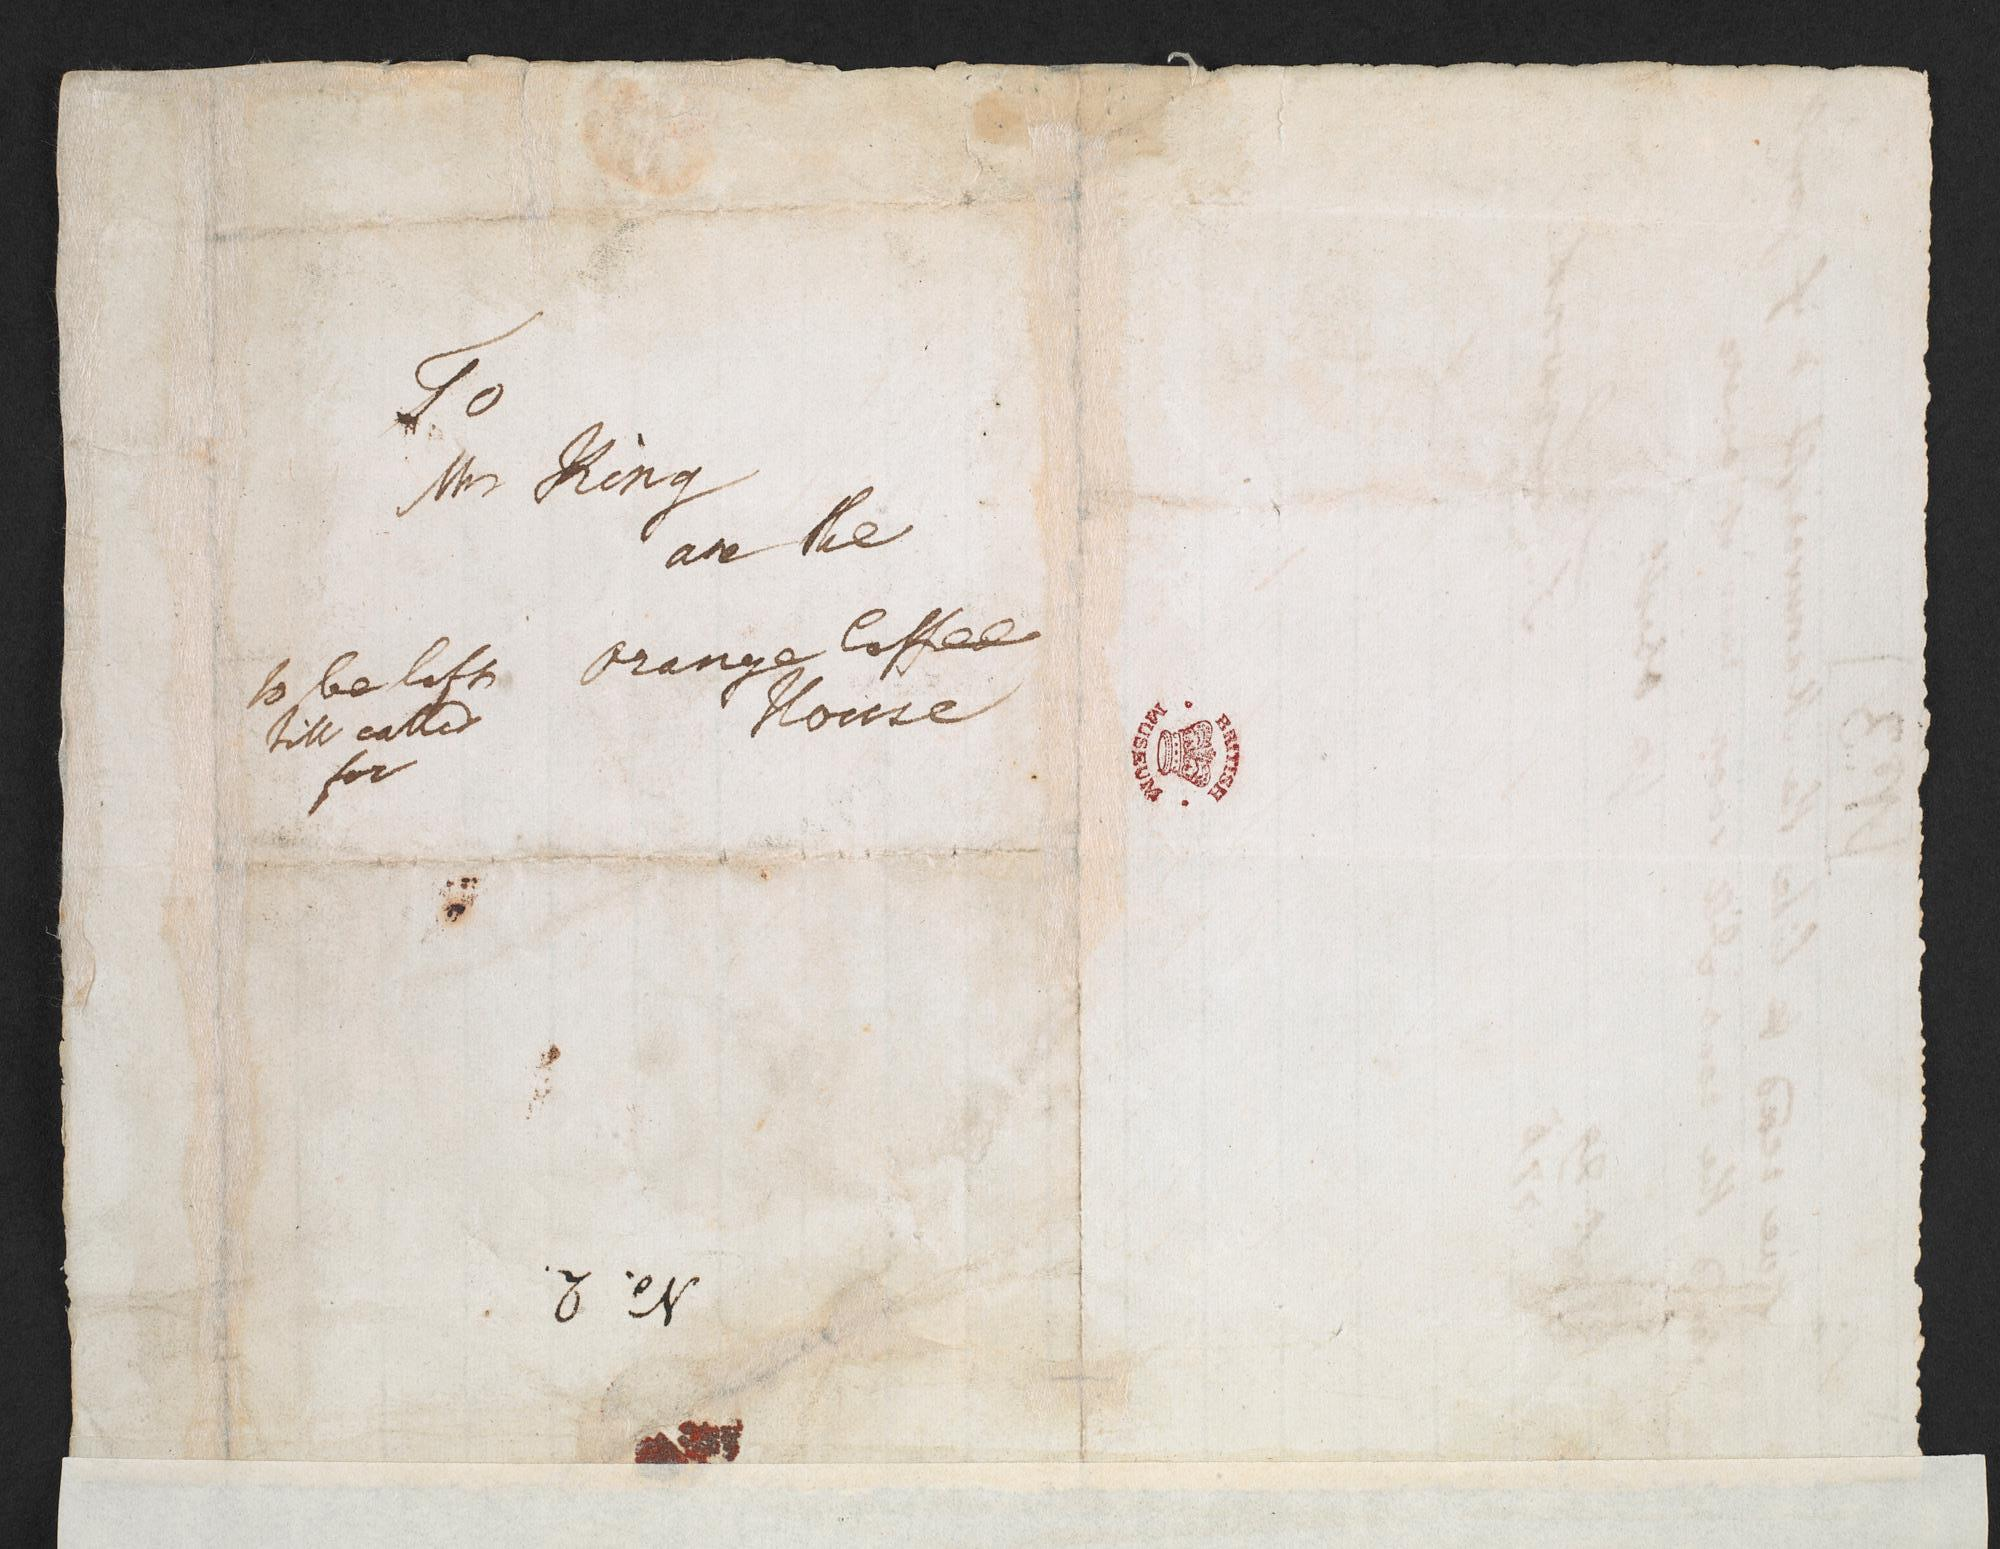 Correspondence between Frances Burney and Thomas Lowndes about Evelina